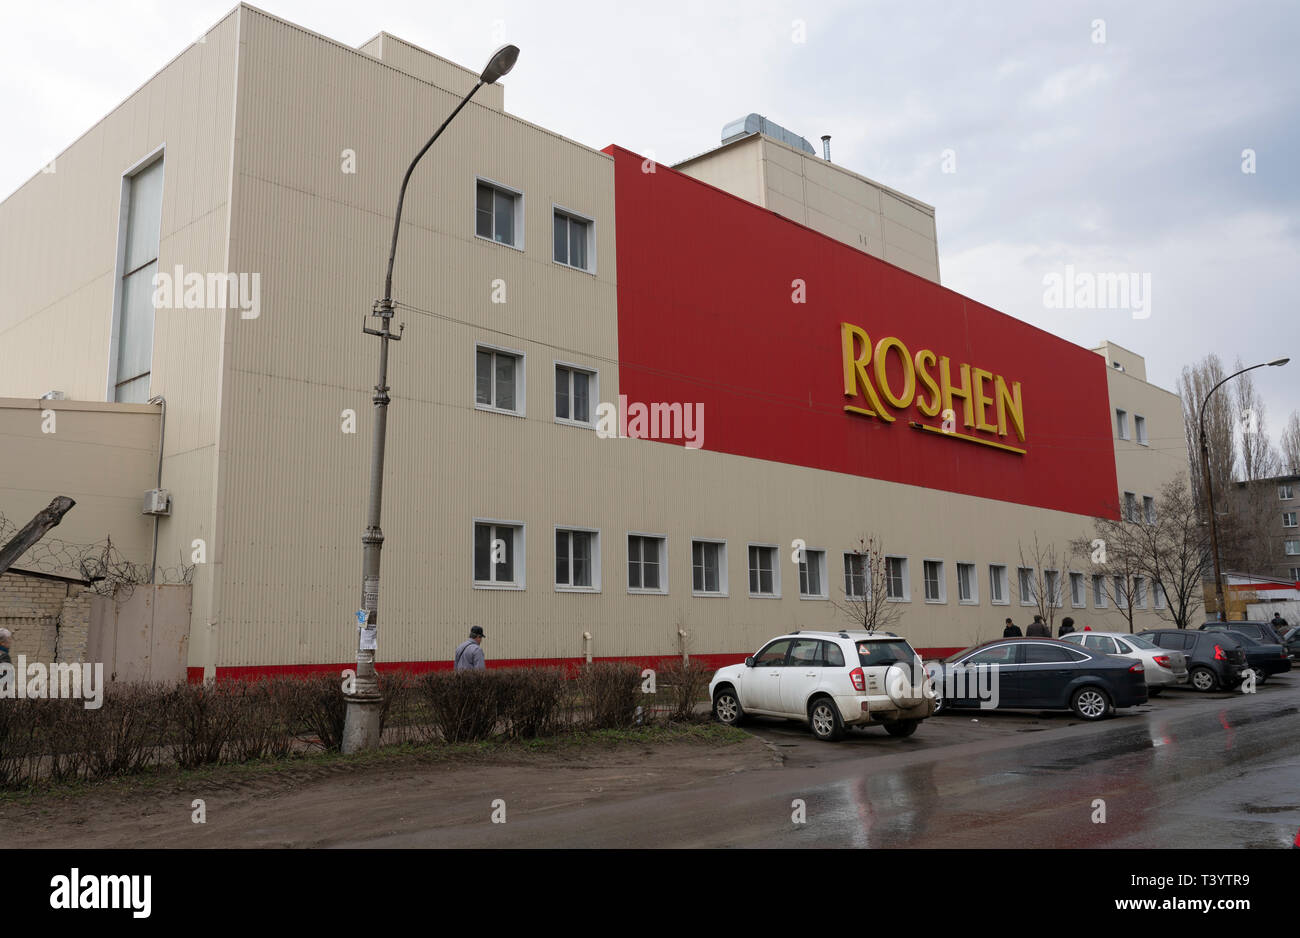 Russia, Lipetsk, Confectionery factory owned by the President of Ukraine Petro Poroshenko, closed by the Russian authorities - Stock Image